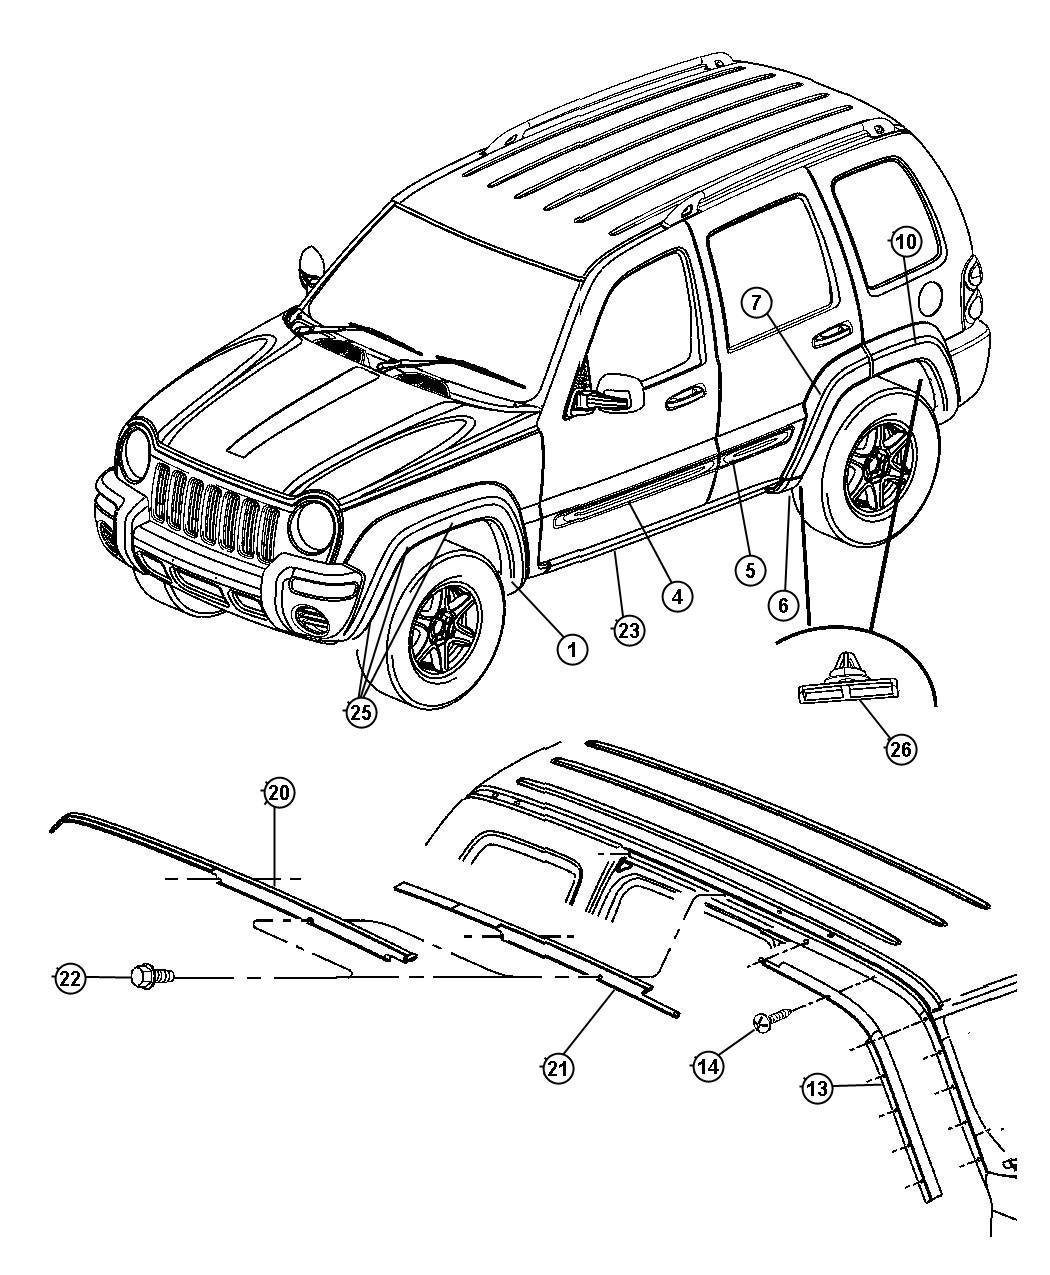 08 Jeep Liberty Body Parts